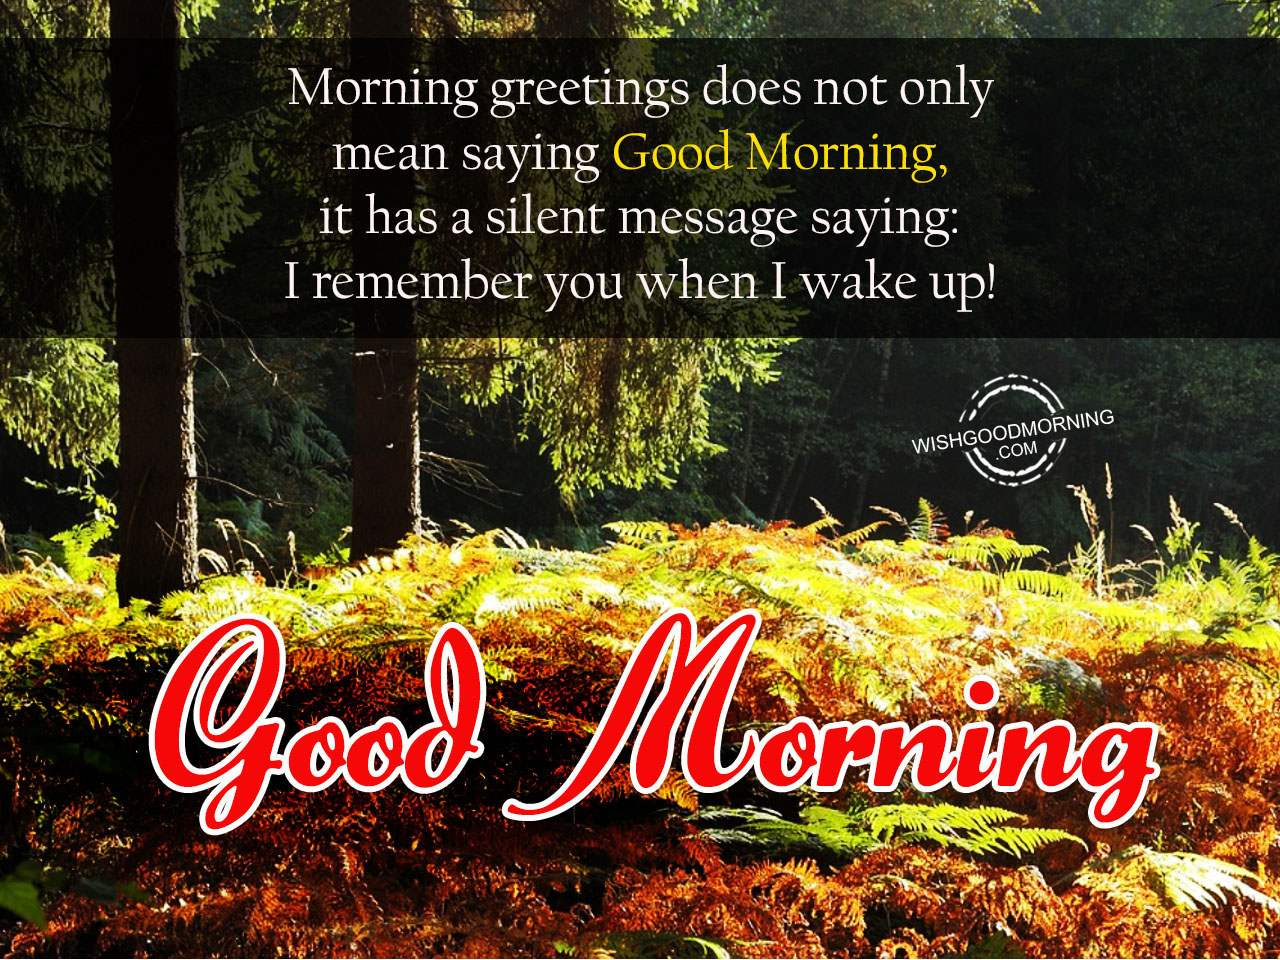 Good Morning Wishes - Good Morning Pictures